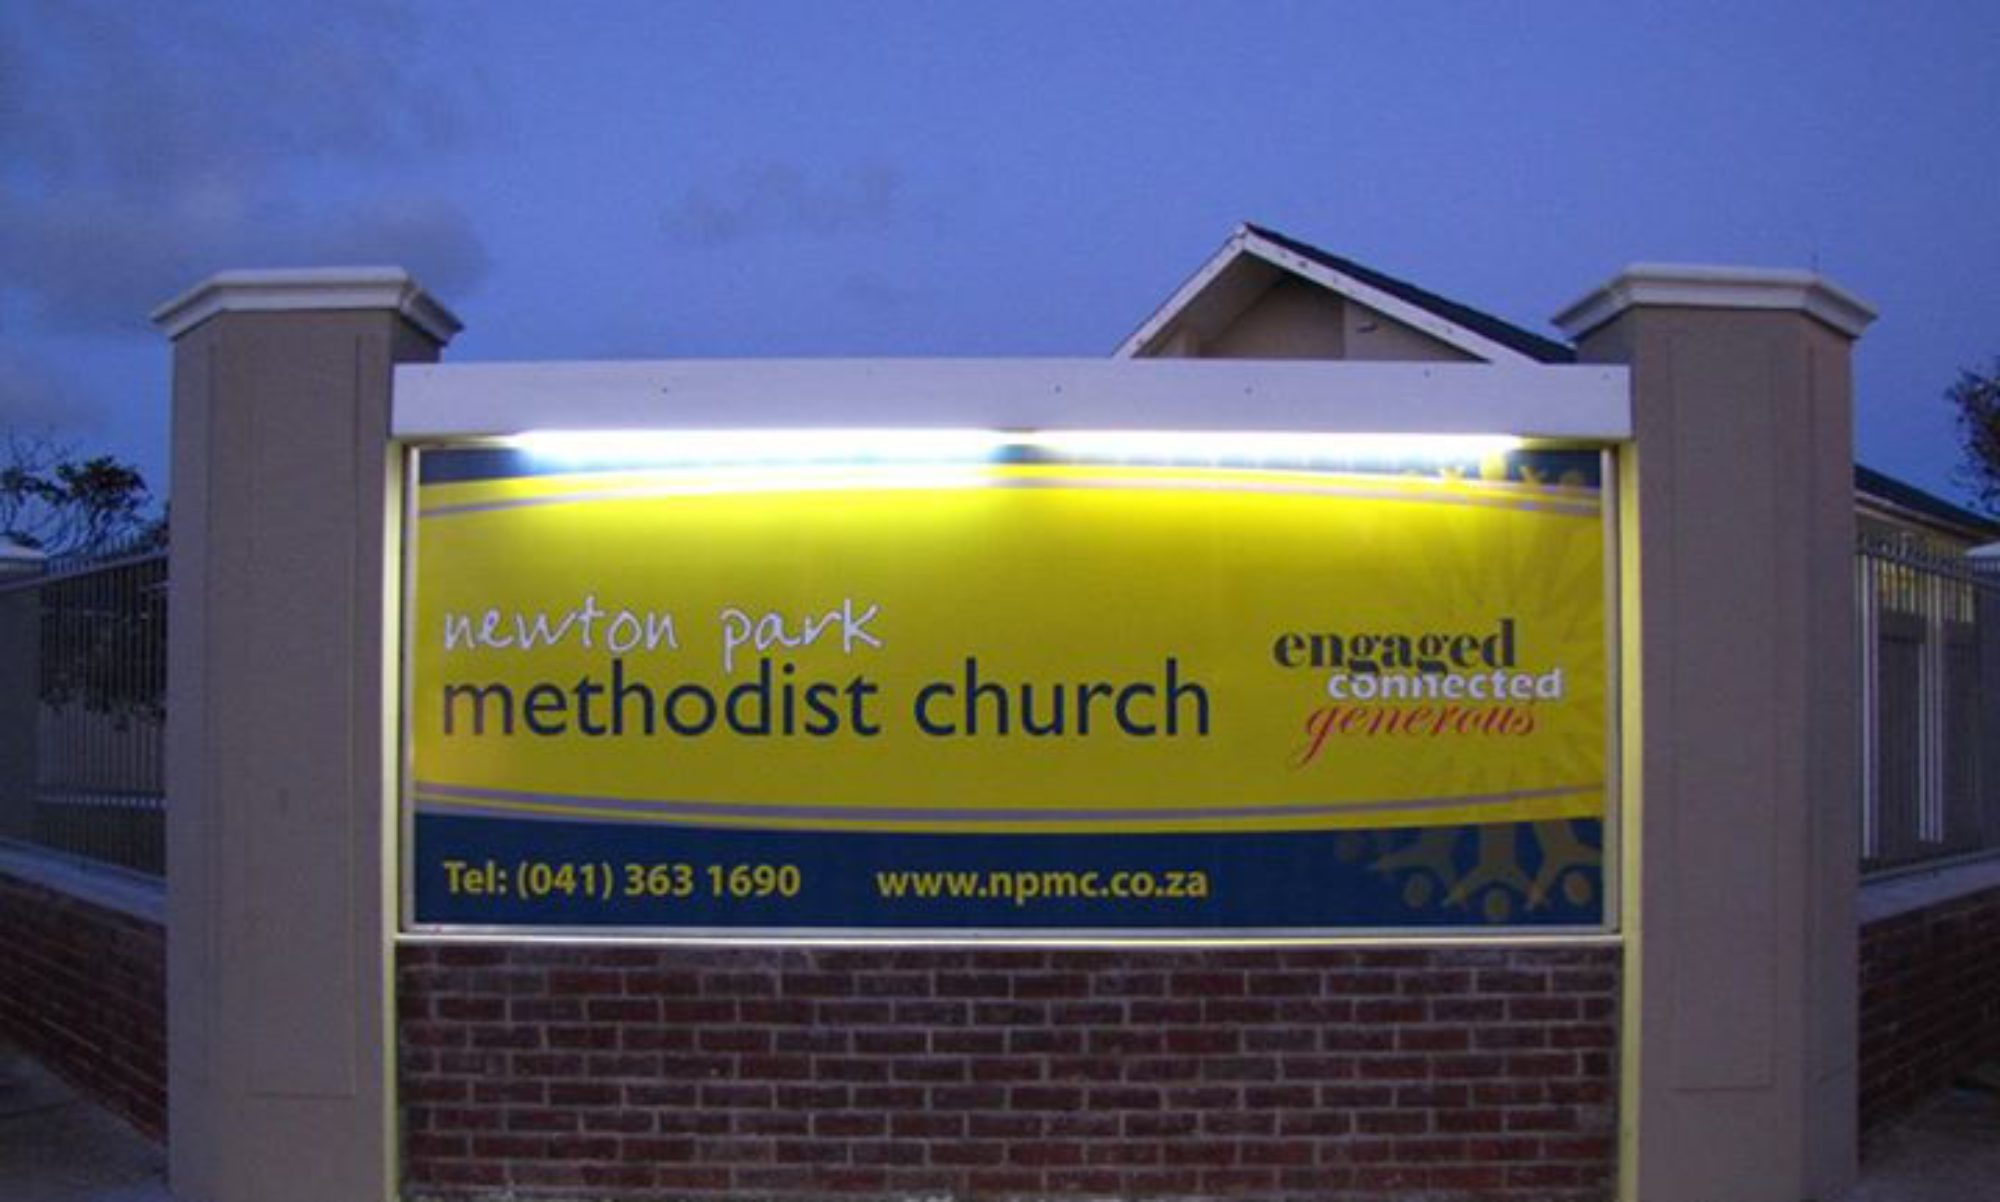 Newton Park Methodist Church